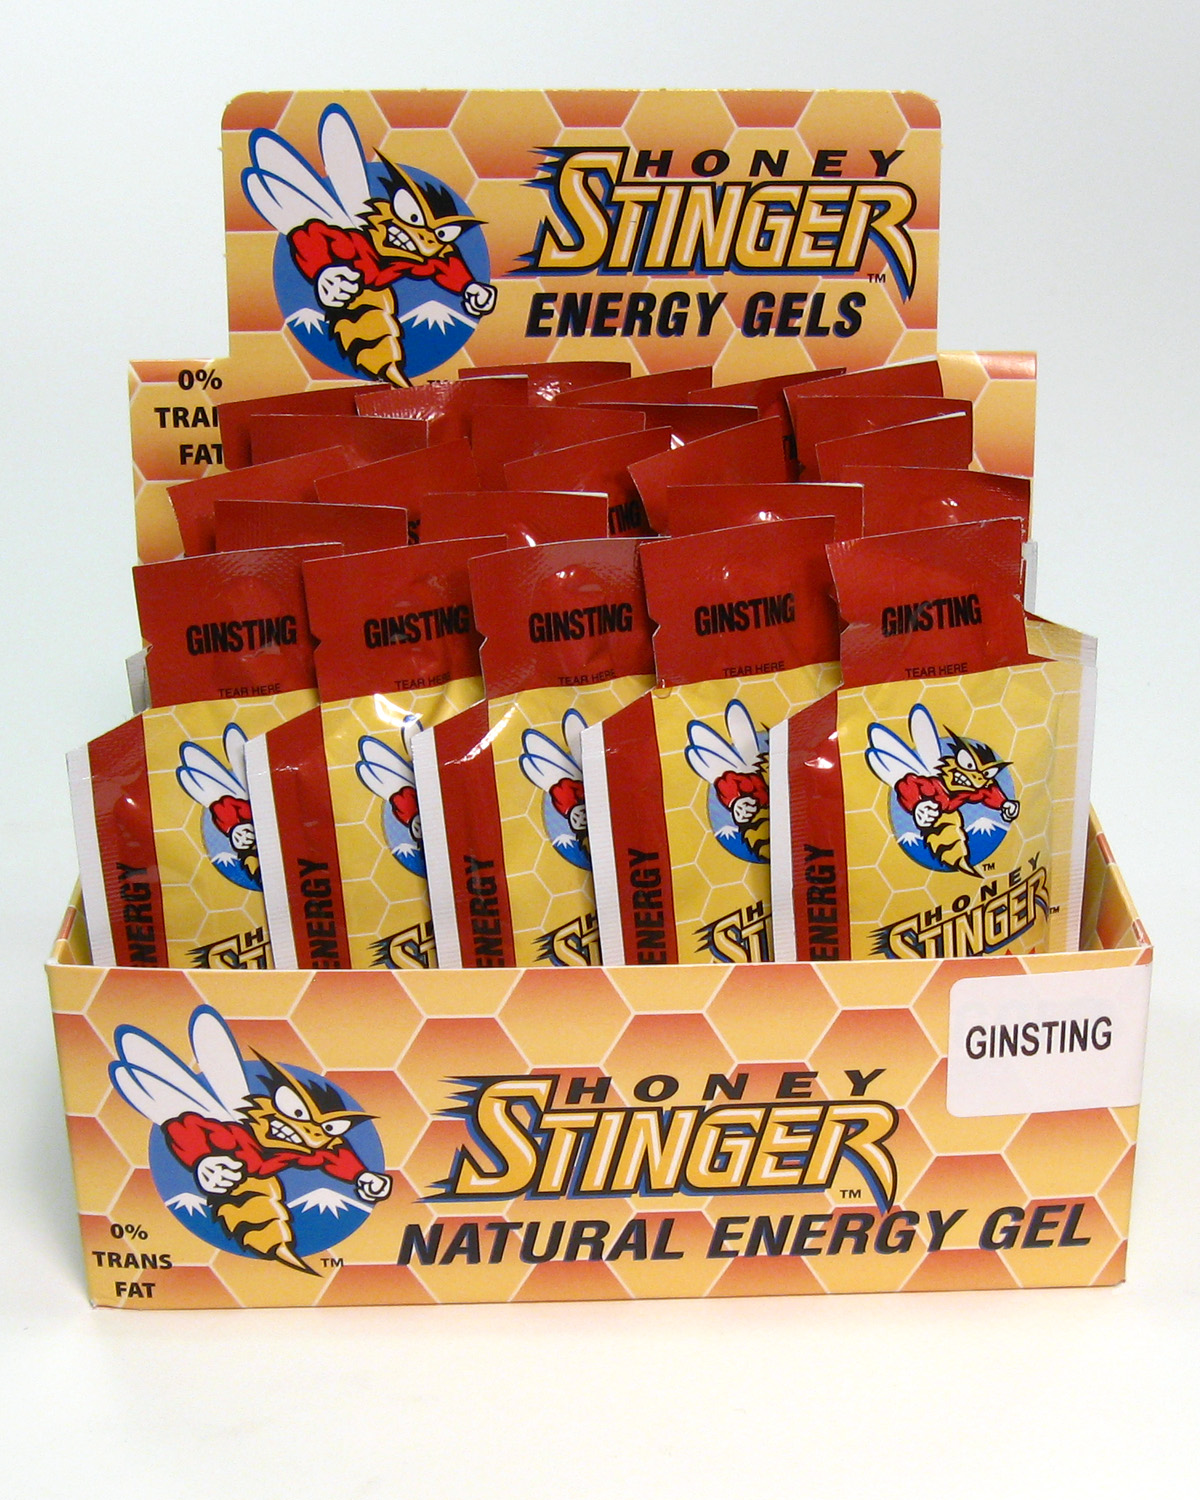 Honey Stinger Energy Gels Ginsting - 24ct